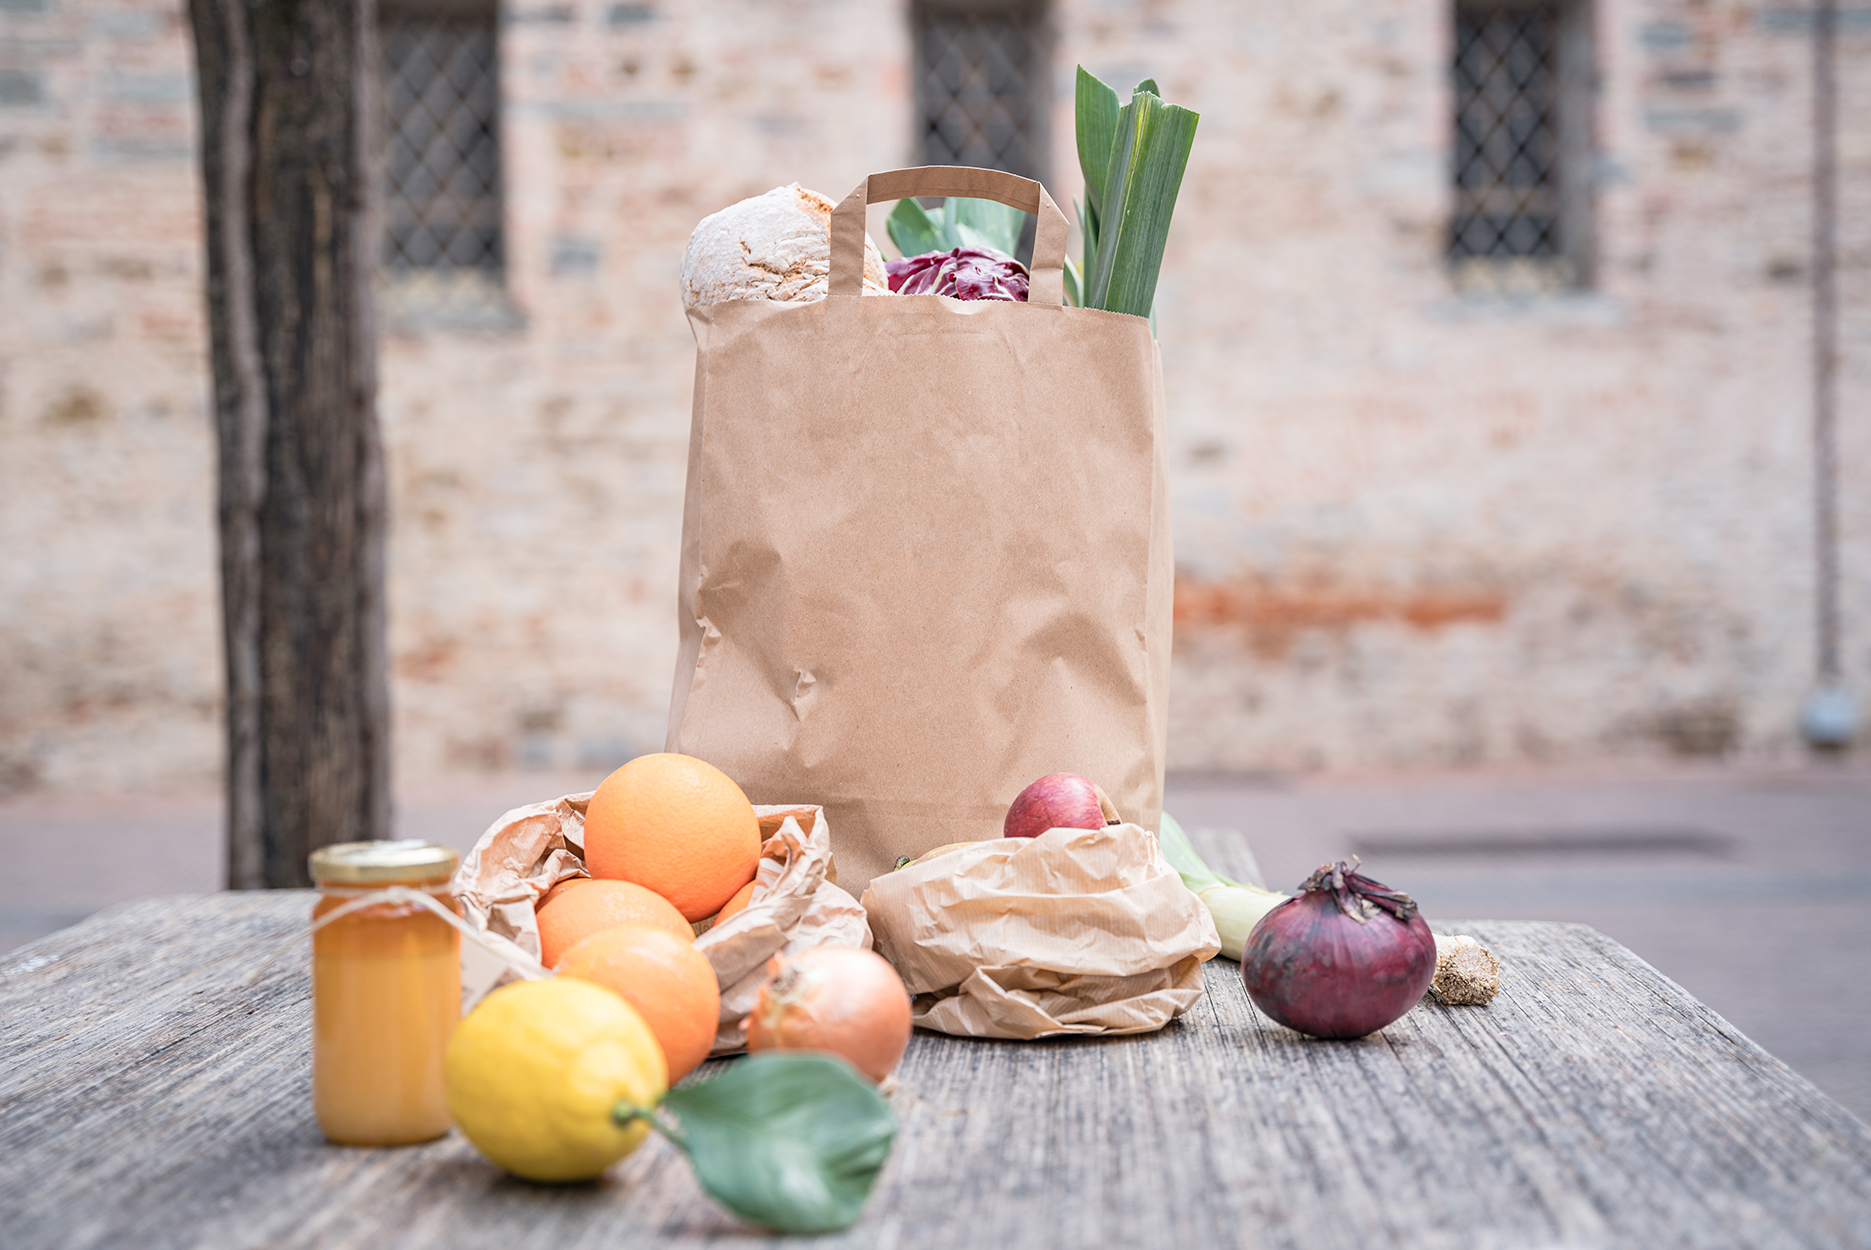 farm-to-table fruits and vegetables in a paper bag ready to be delivered at home